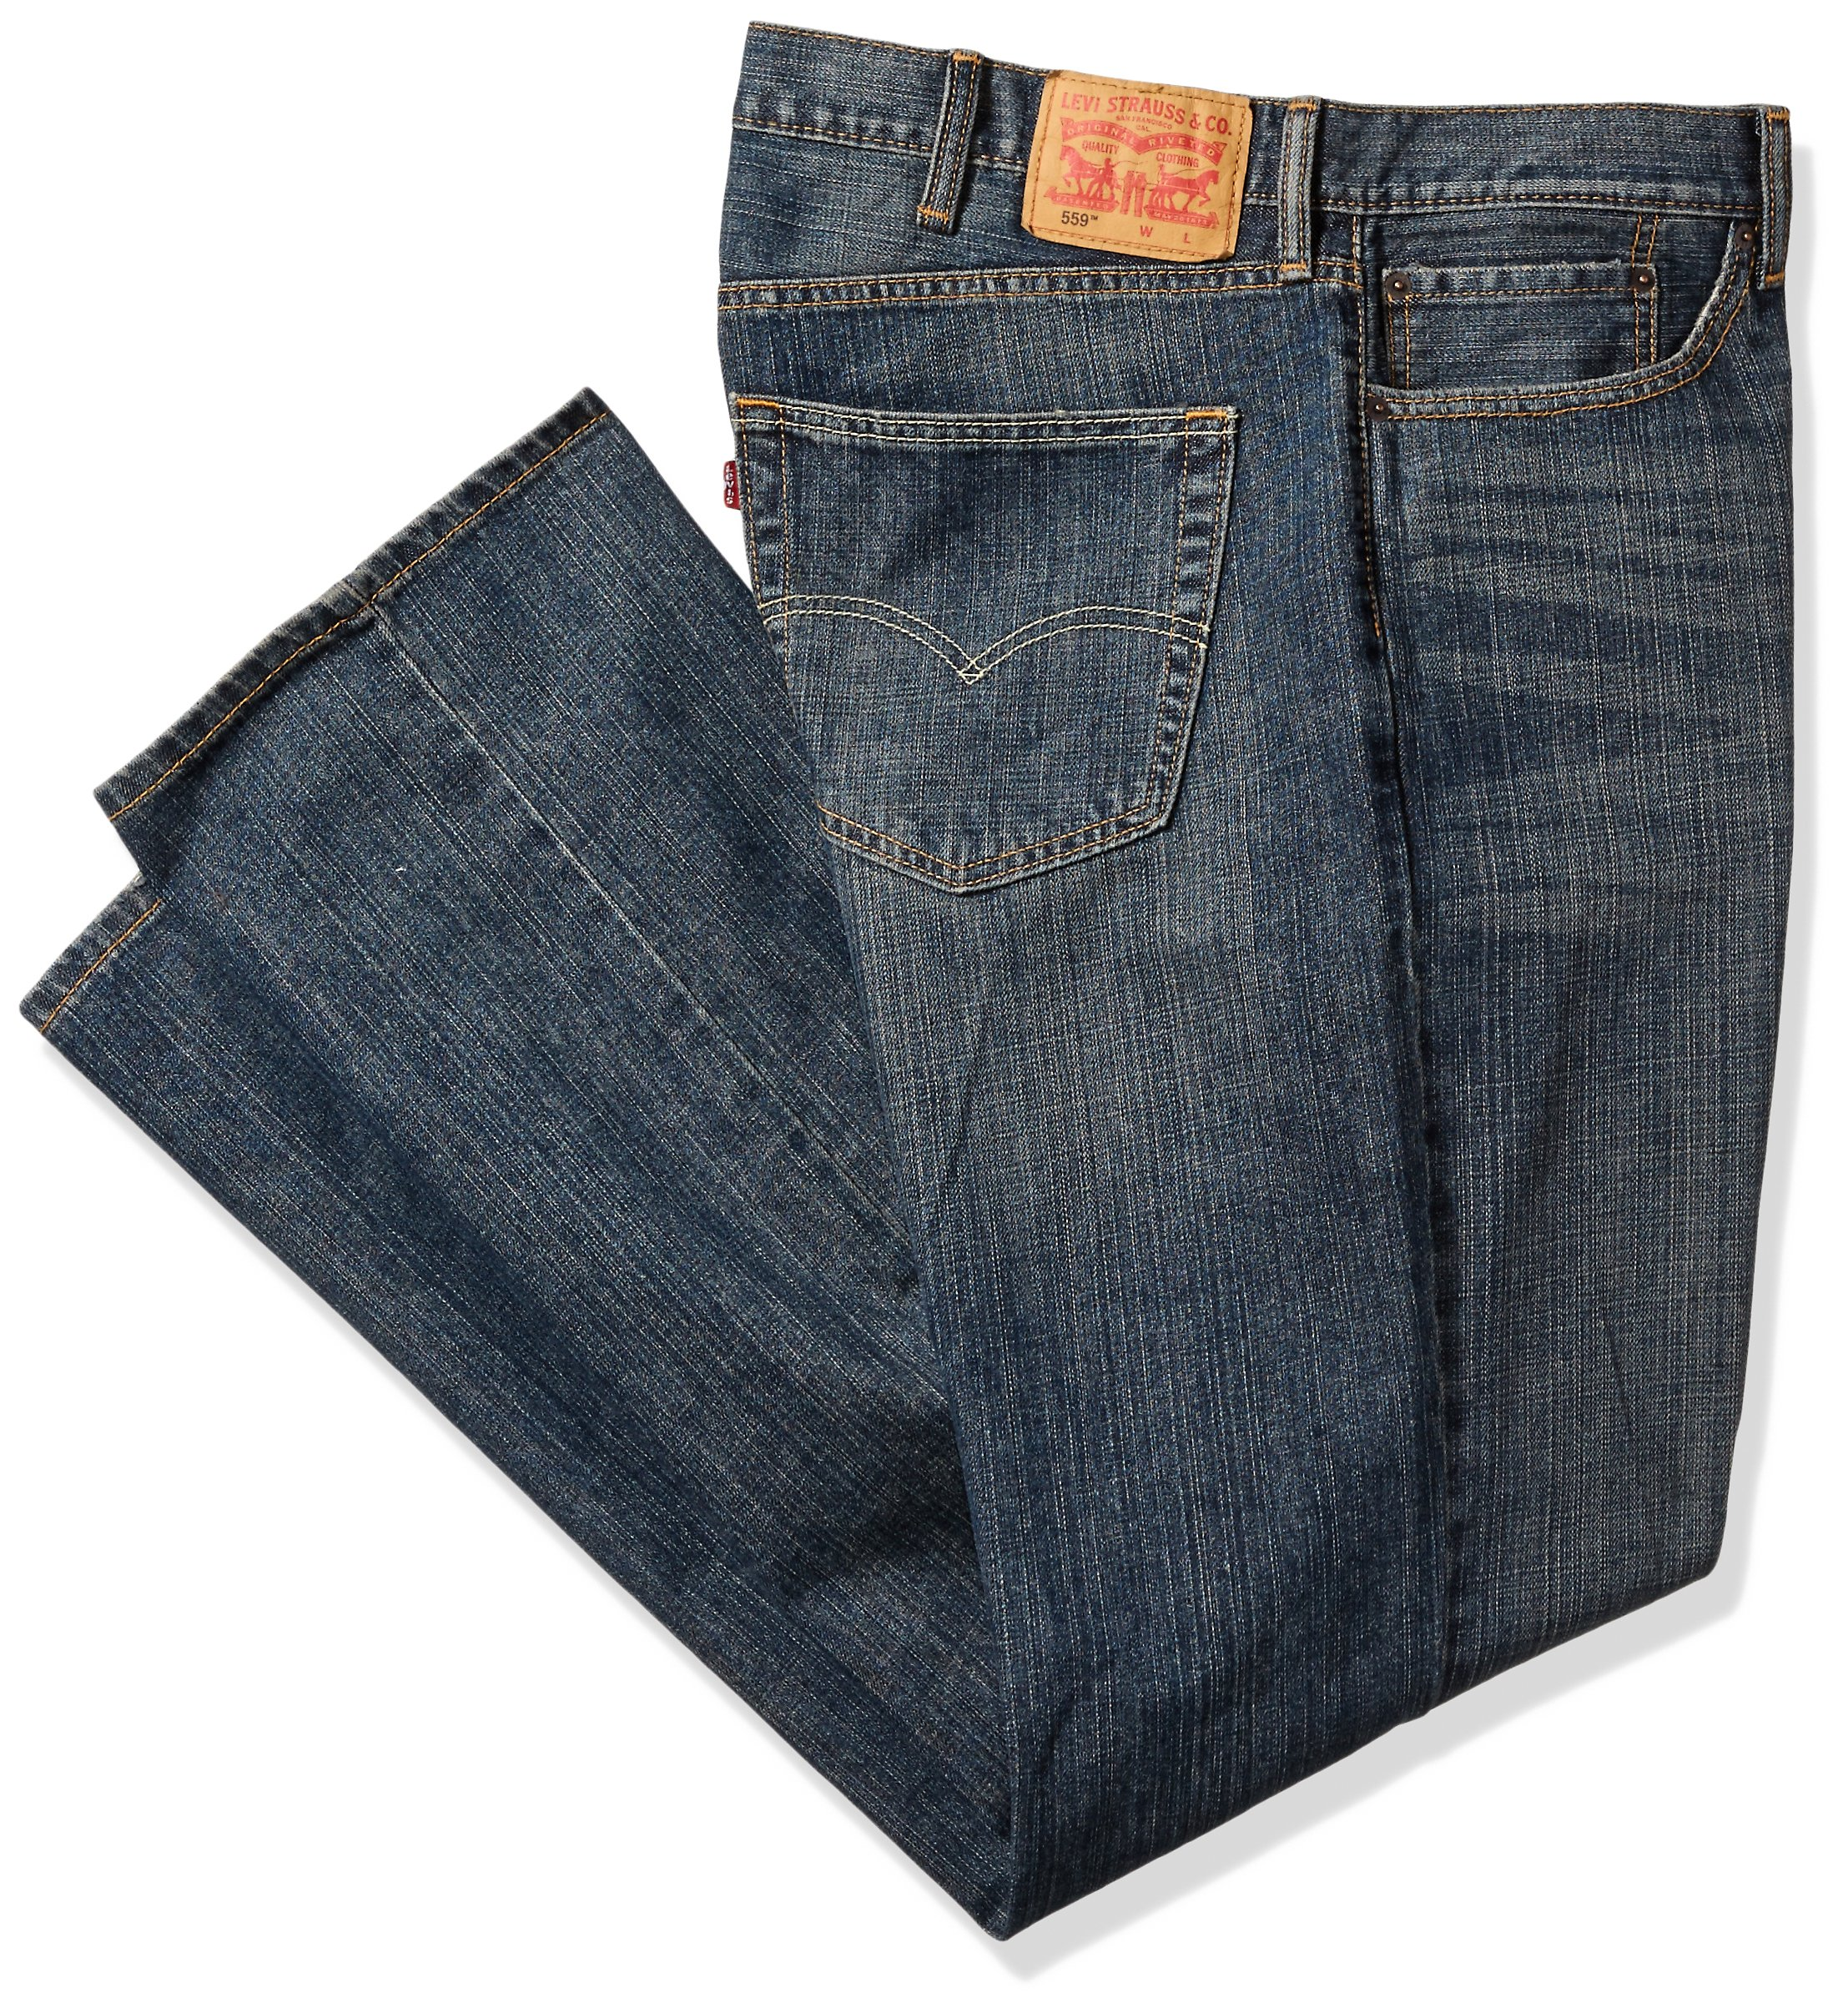 Levi's Men's 559 Relaxed Straight Jean - Big & Tall, Range, 46x30